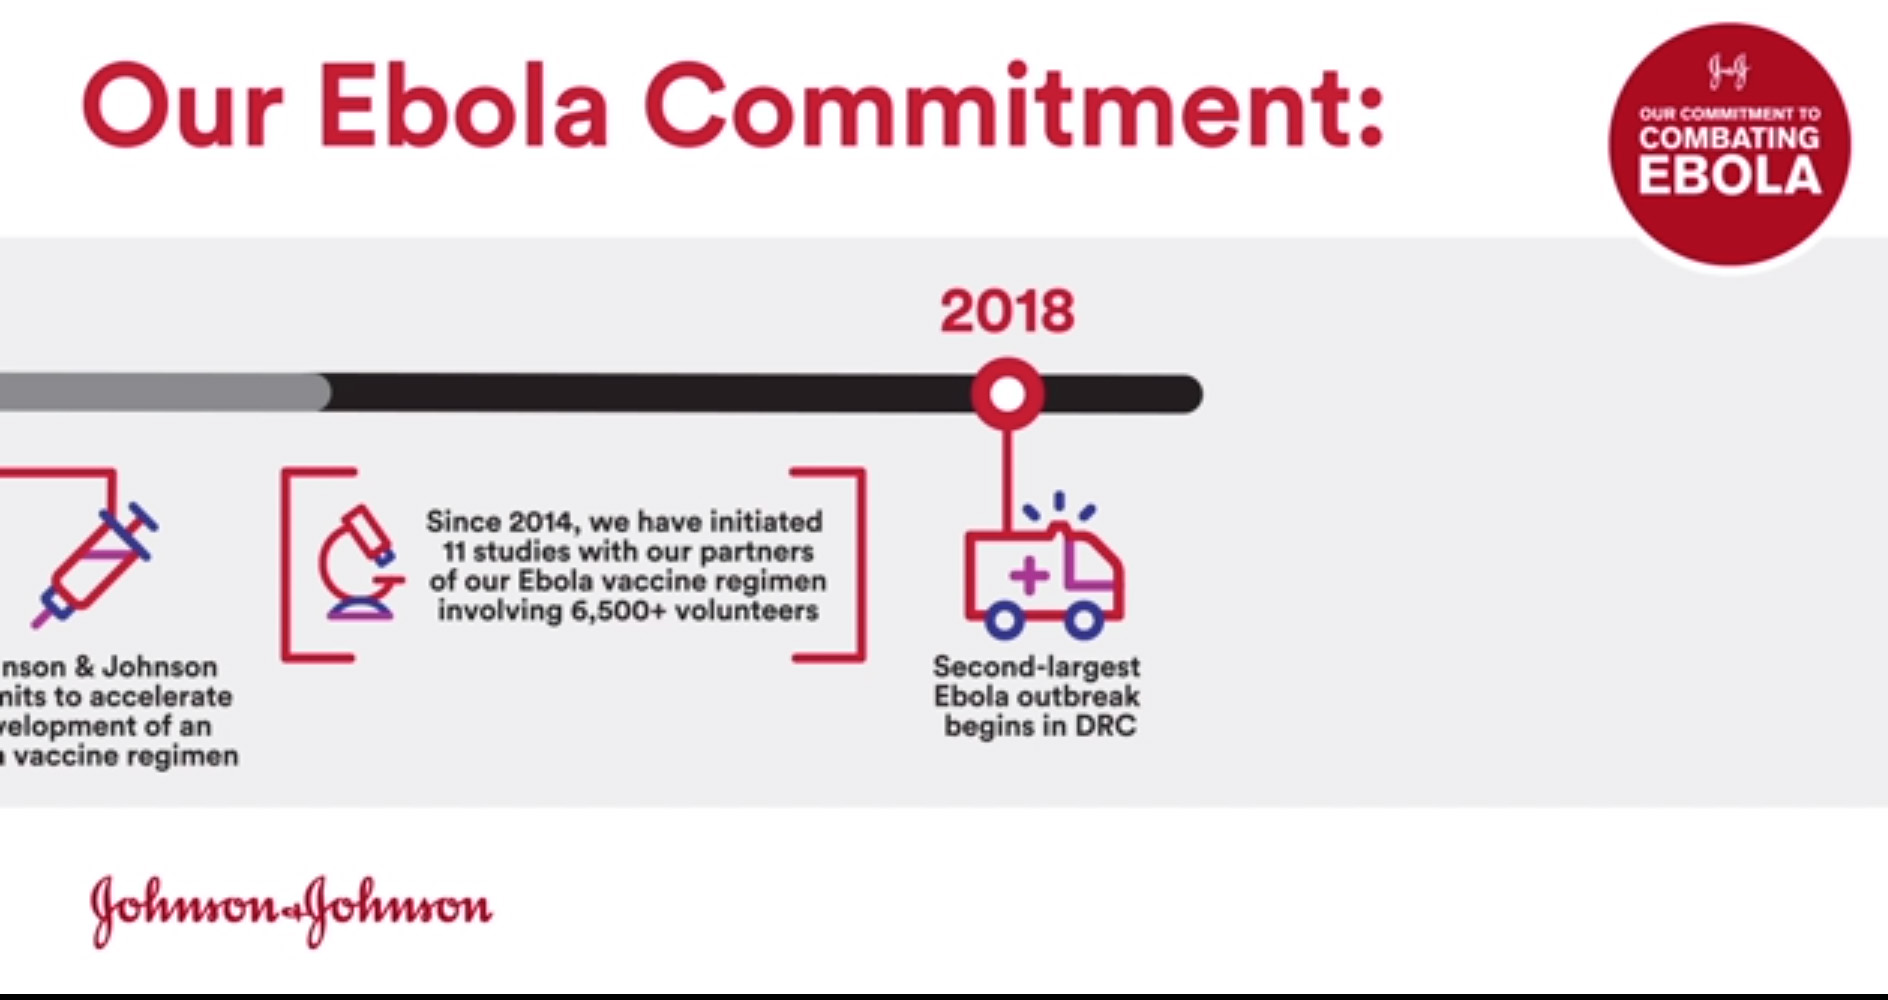 Our Ebola Commitment